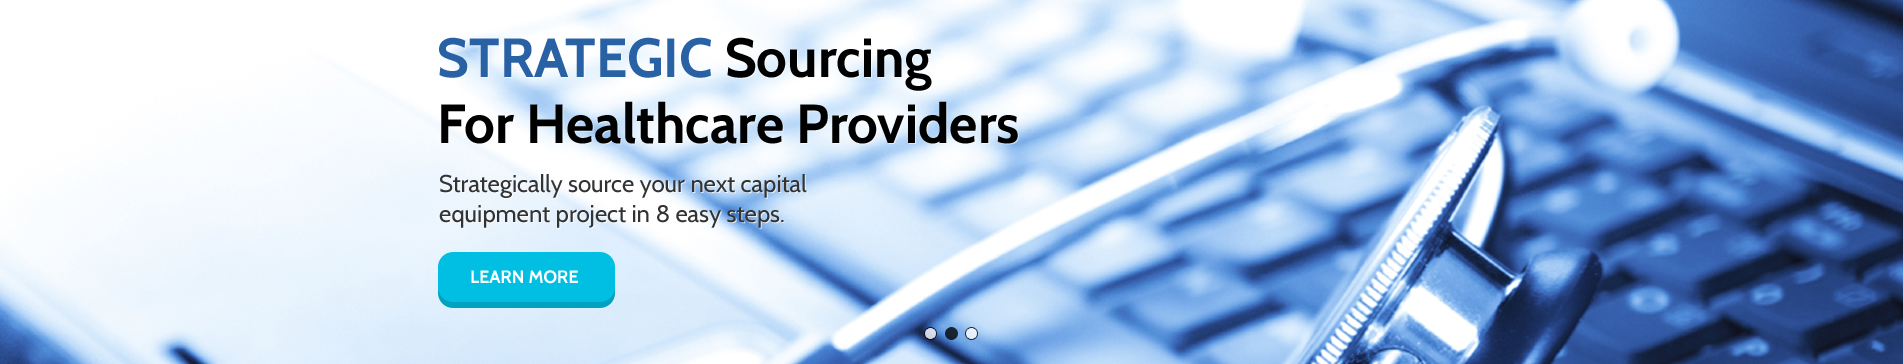 Strategic Sourcing for Healthcare